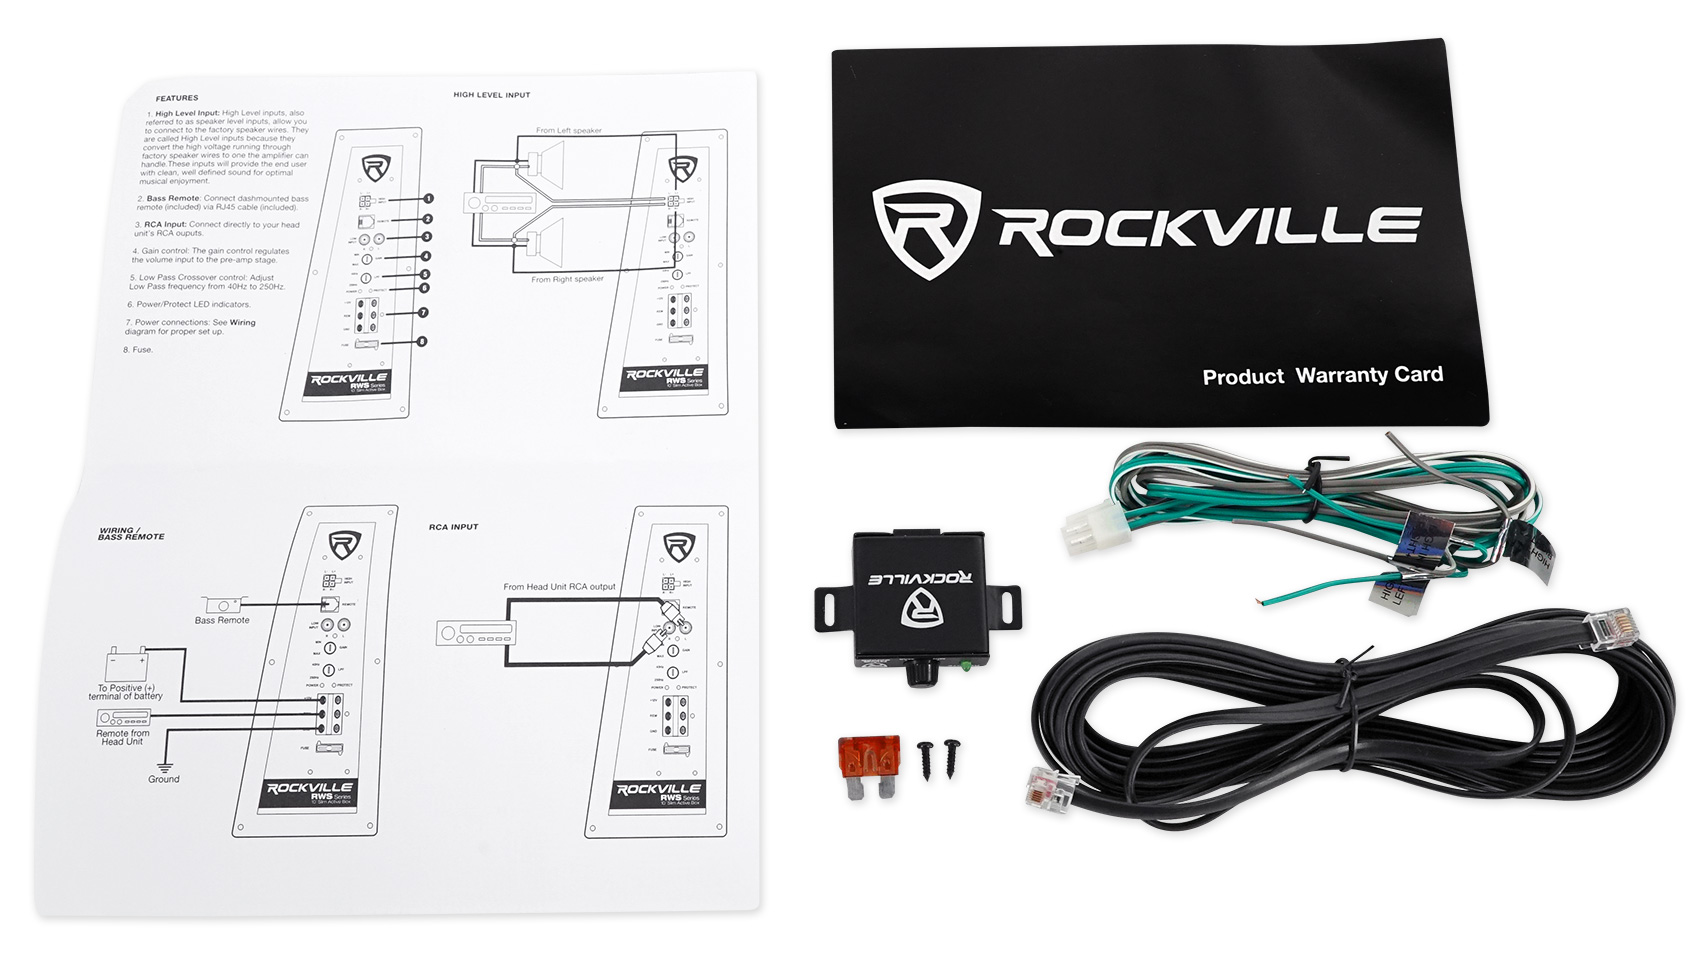 Rockville Wiring Diagram Library 5 Pole Relay Muncie Pto System Rws12ca Slim 1200 Watt 12 Powered Car Subwoofer Enclosure Wire Kit Walmart